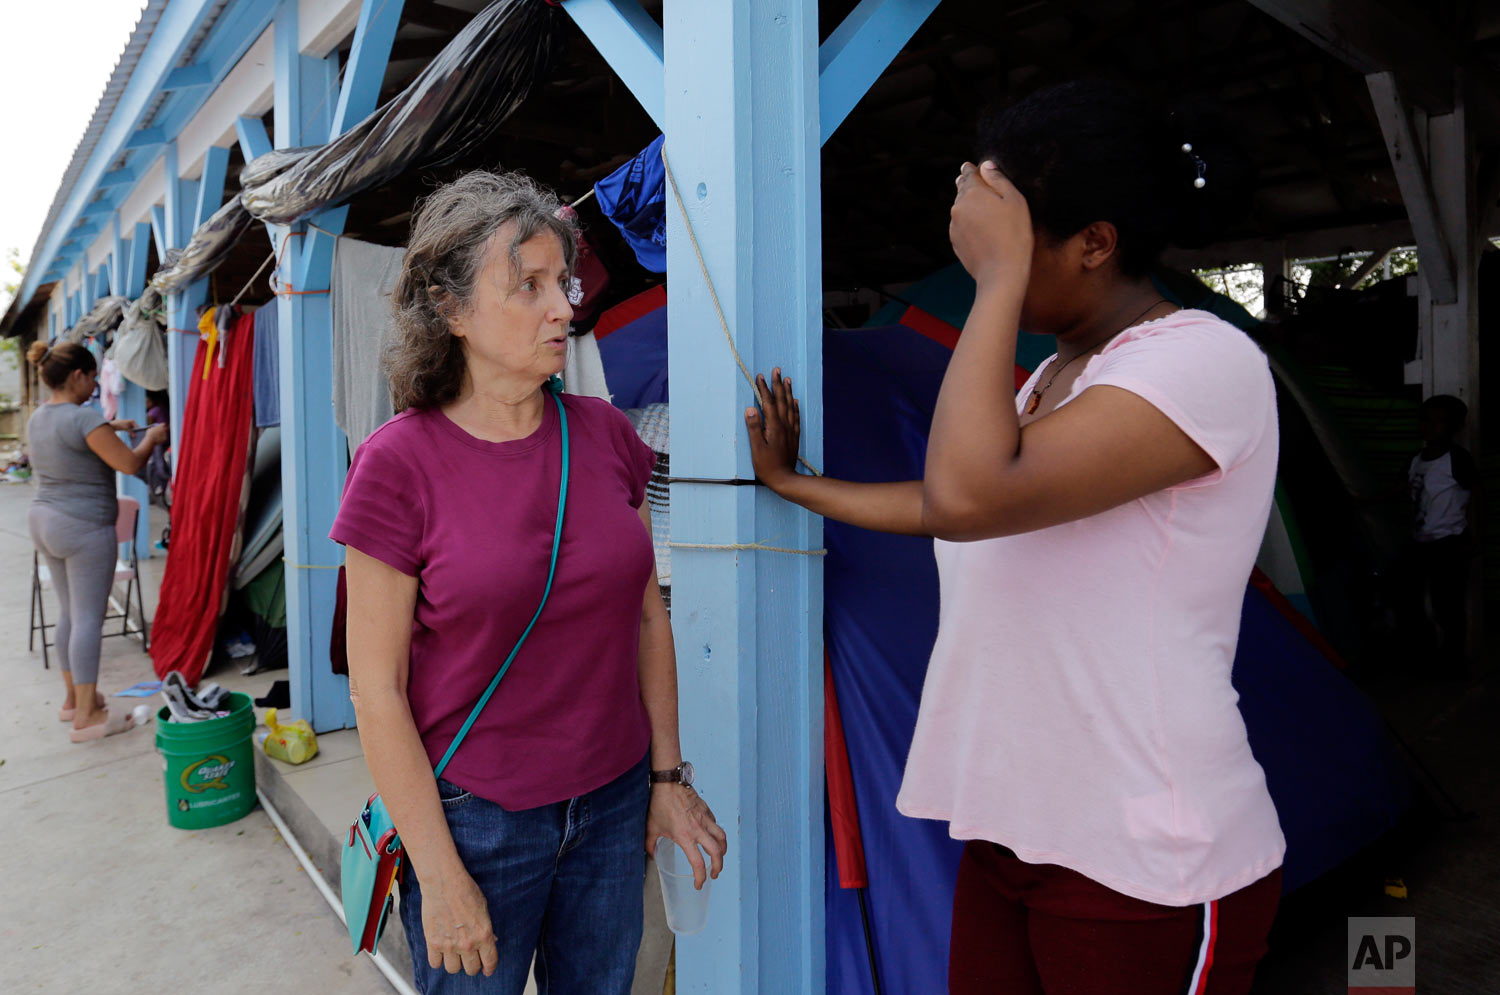 Jennifer Harbury, left, a human rights lawyer, speaks to an asylum seeker in Reynosa, Mexico, May 1, 2019. (AP Photo/Eric Gay)